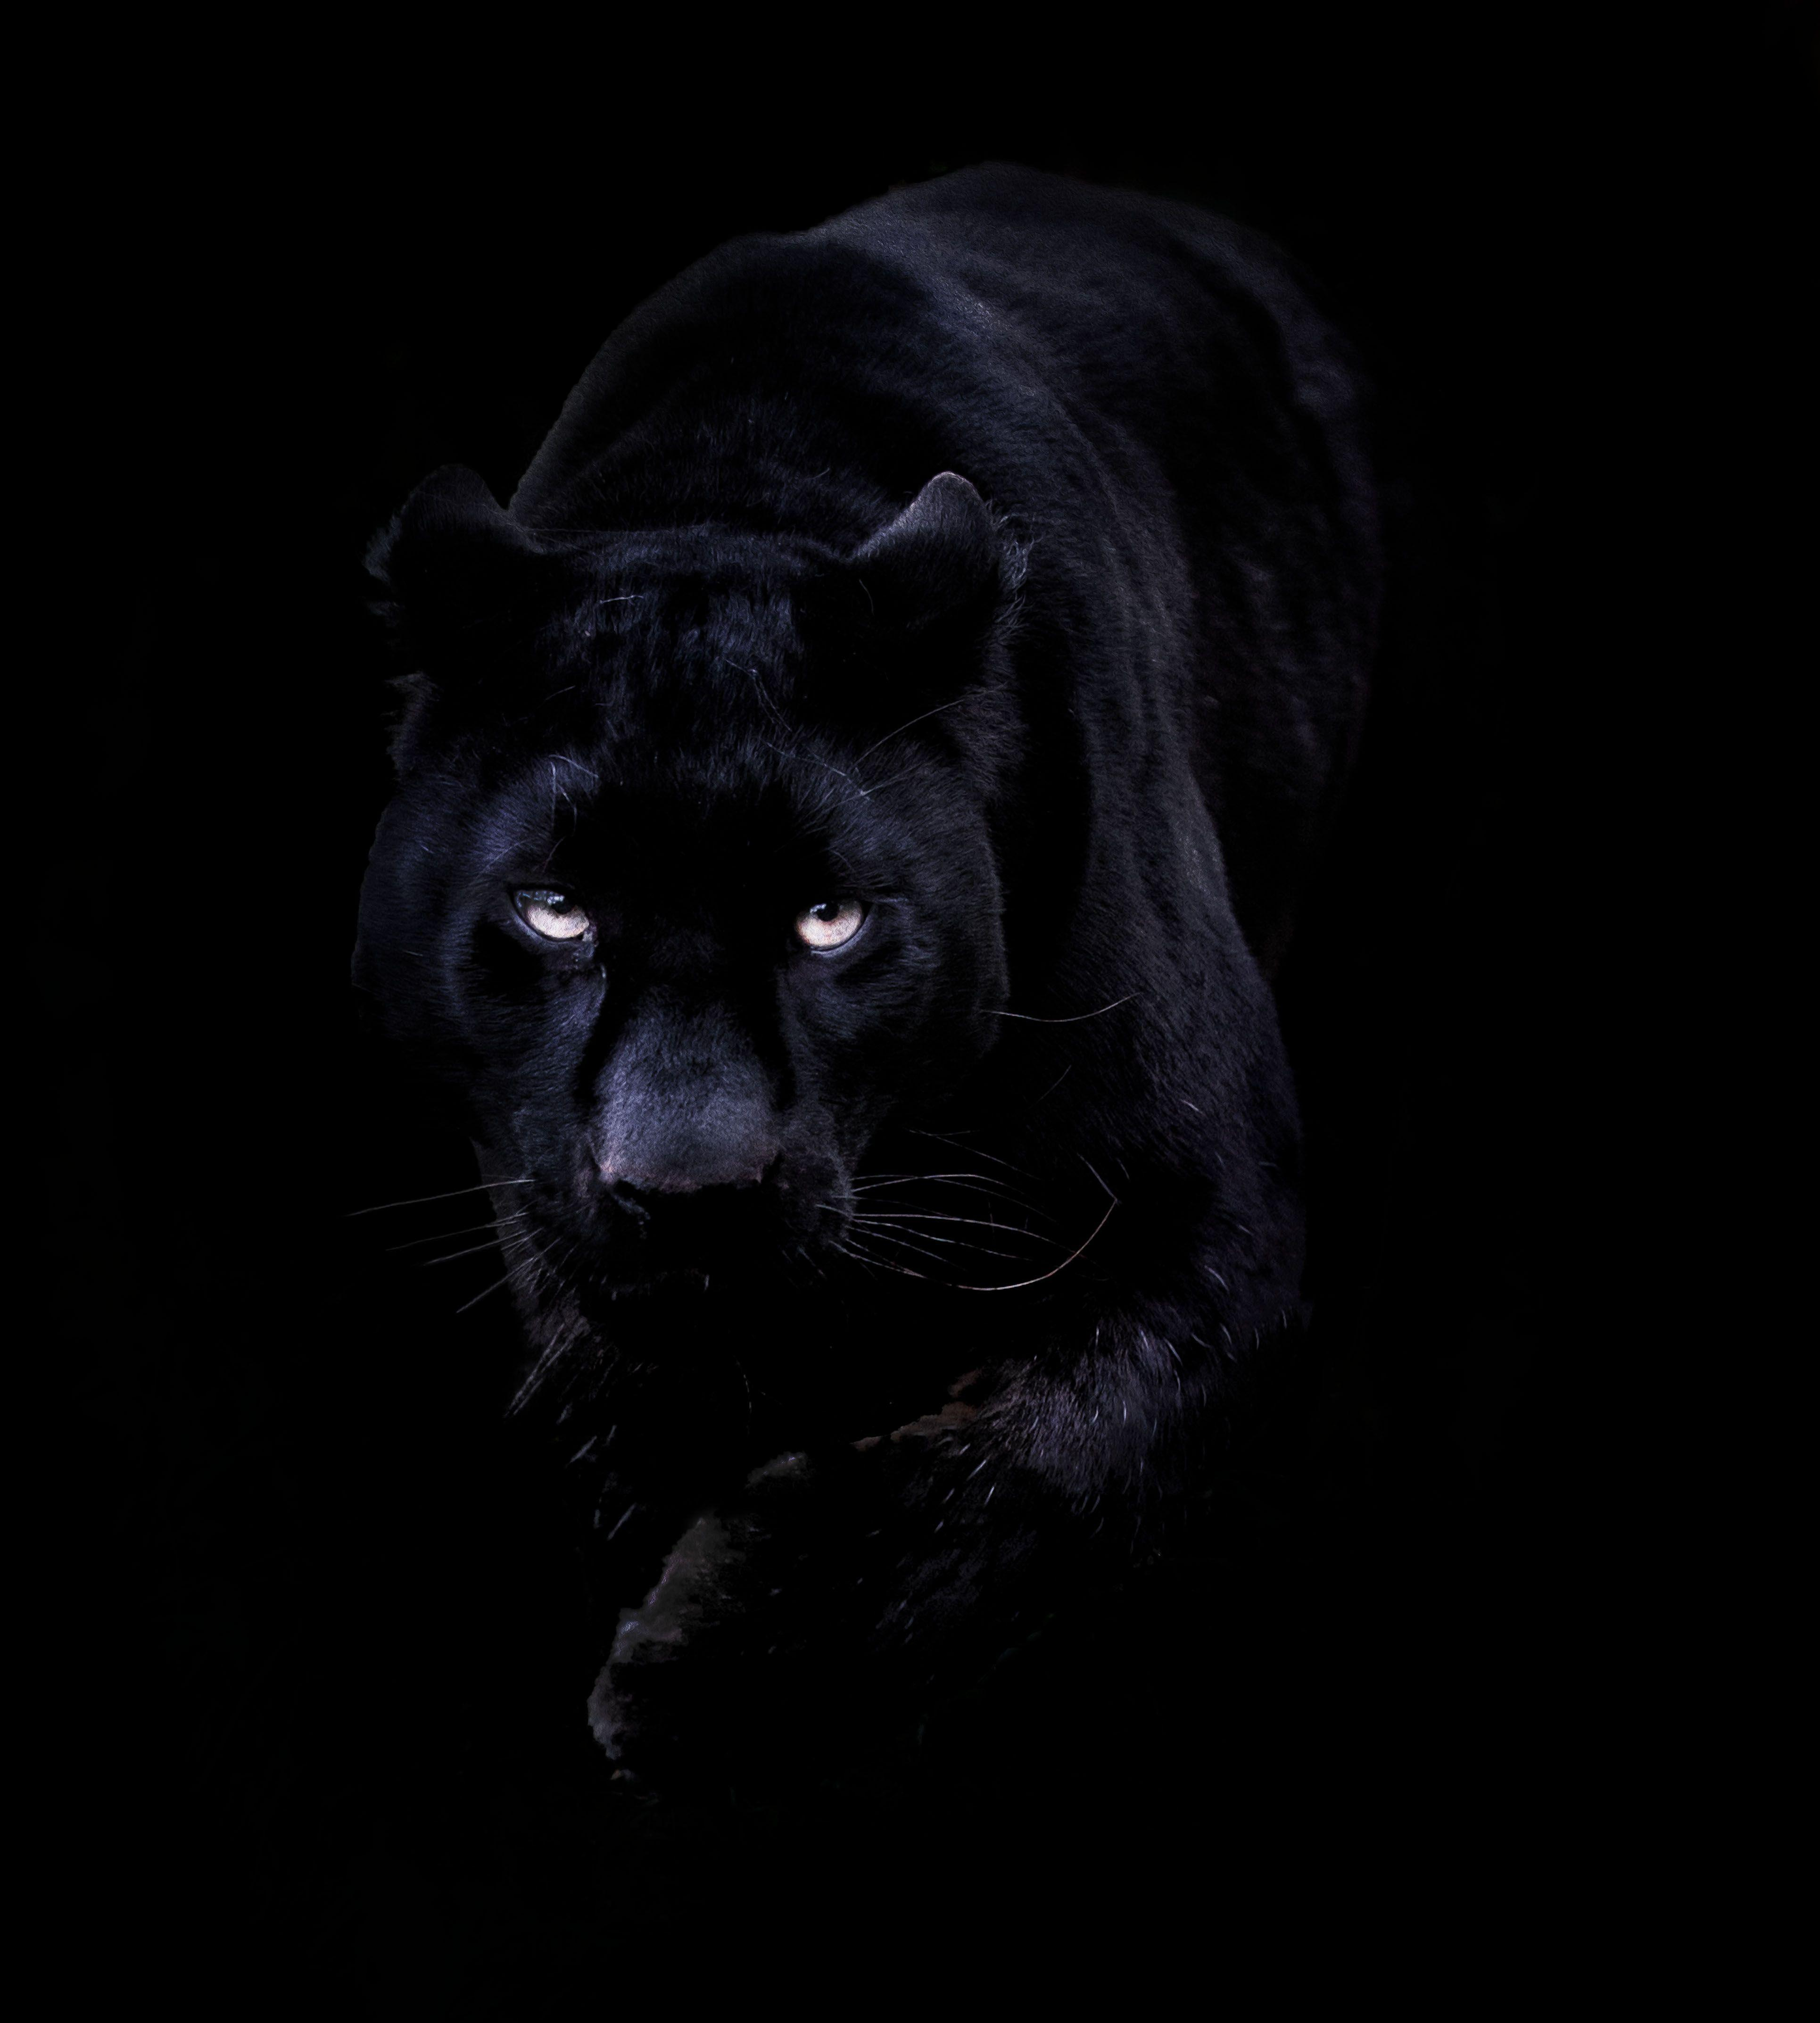 Black Panther Wallpapers - Wallpaper Cave